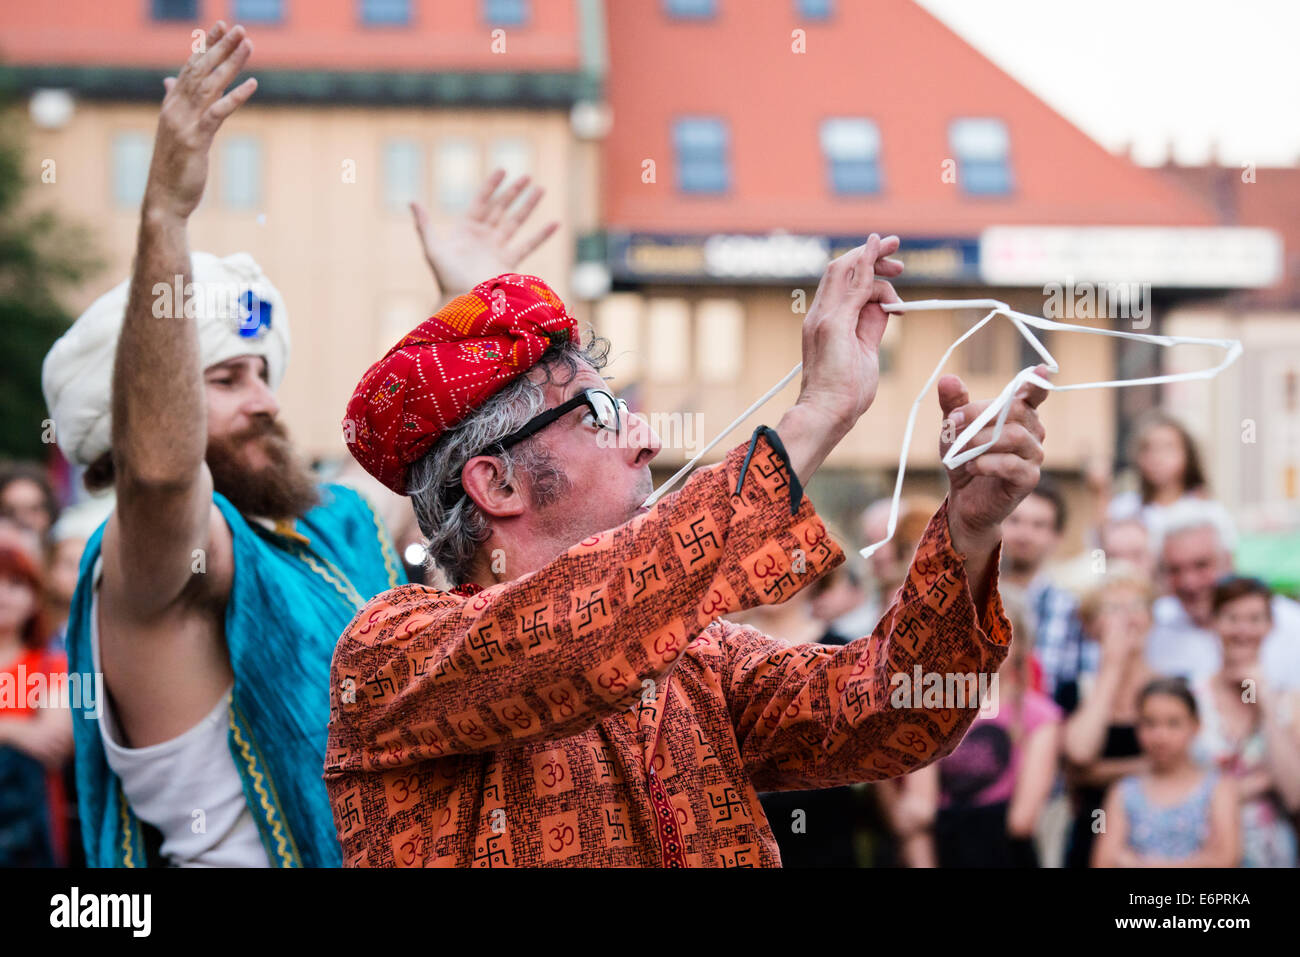 The Incredible Box, street theatre performance by Cia La Tal at Festival Lent, Maribor, Slovenia, June 28, 2014 - Stock Image